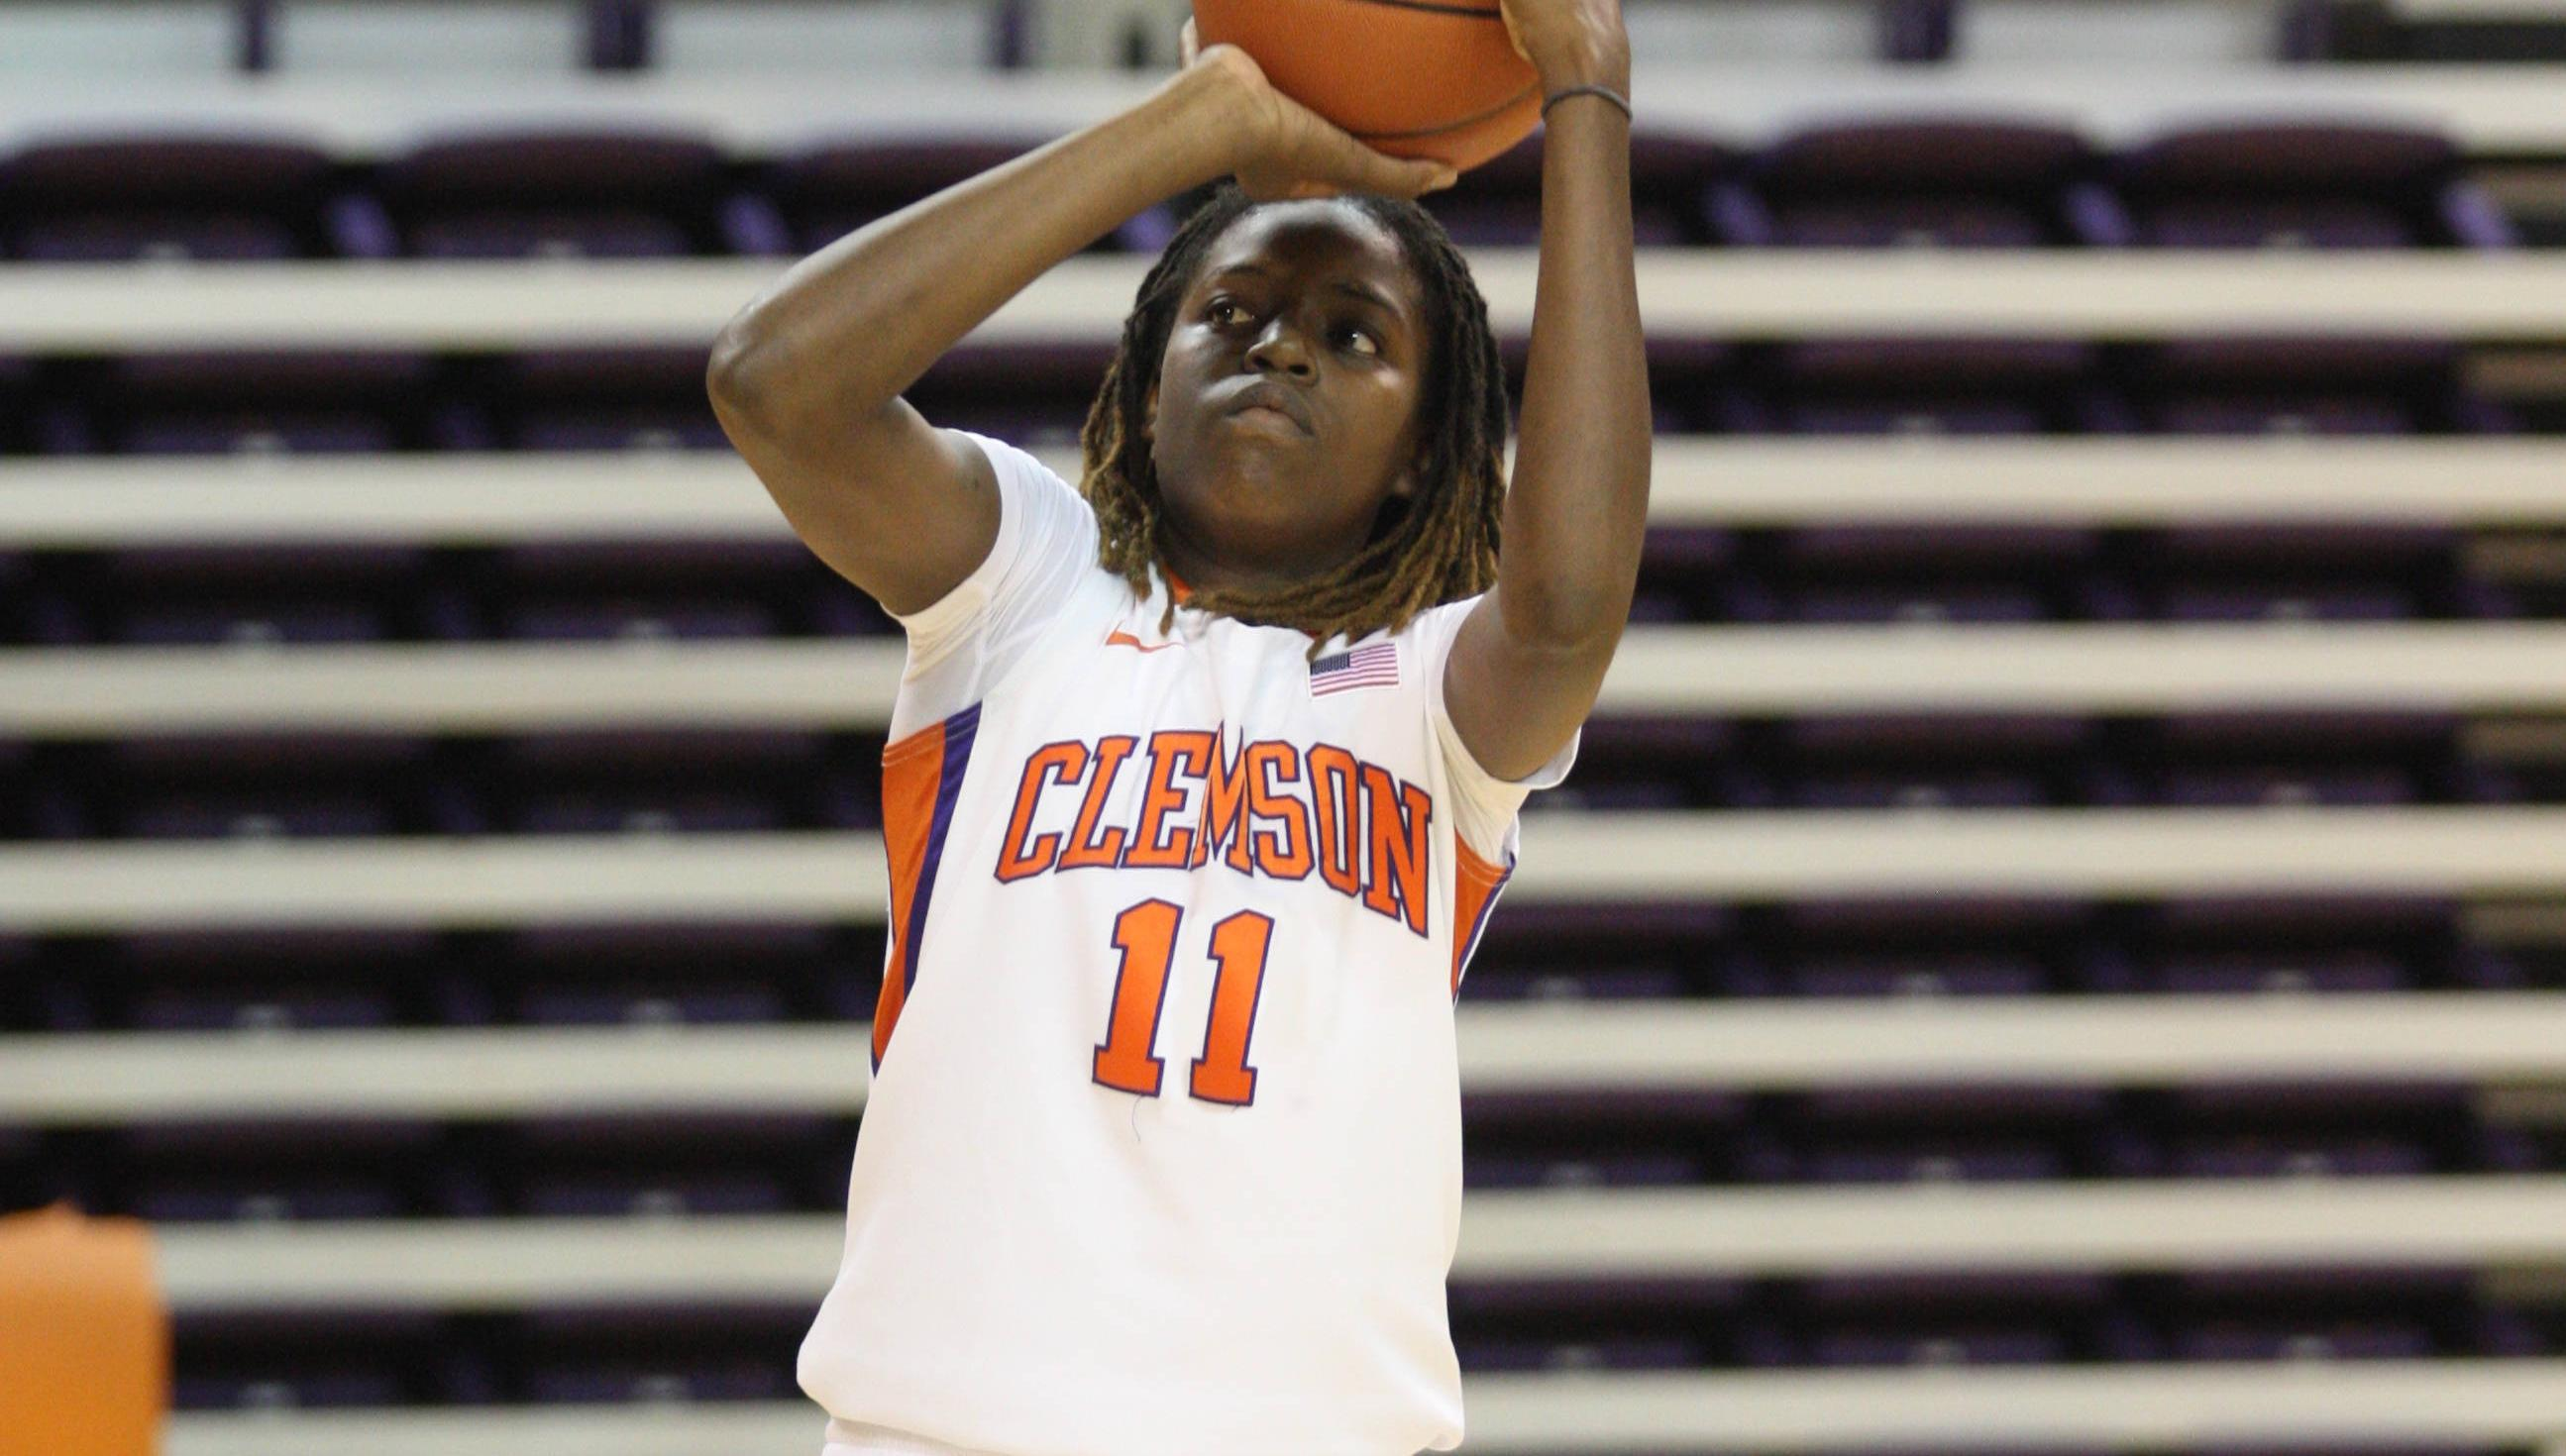 Clemson Women's Basketball Picked to Finish Tenth in ACC Preseason Polls